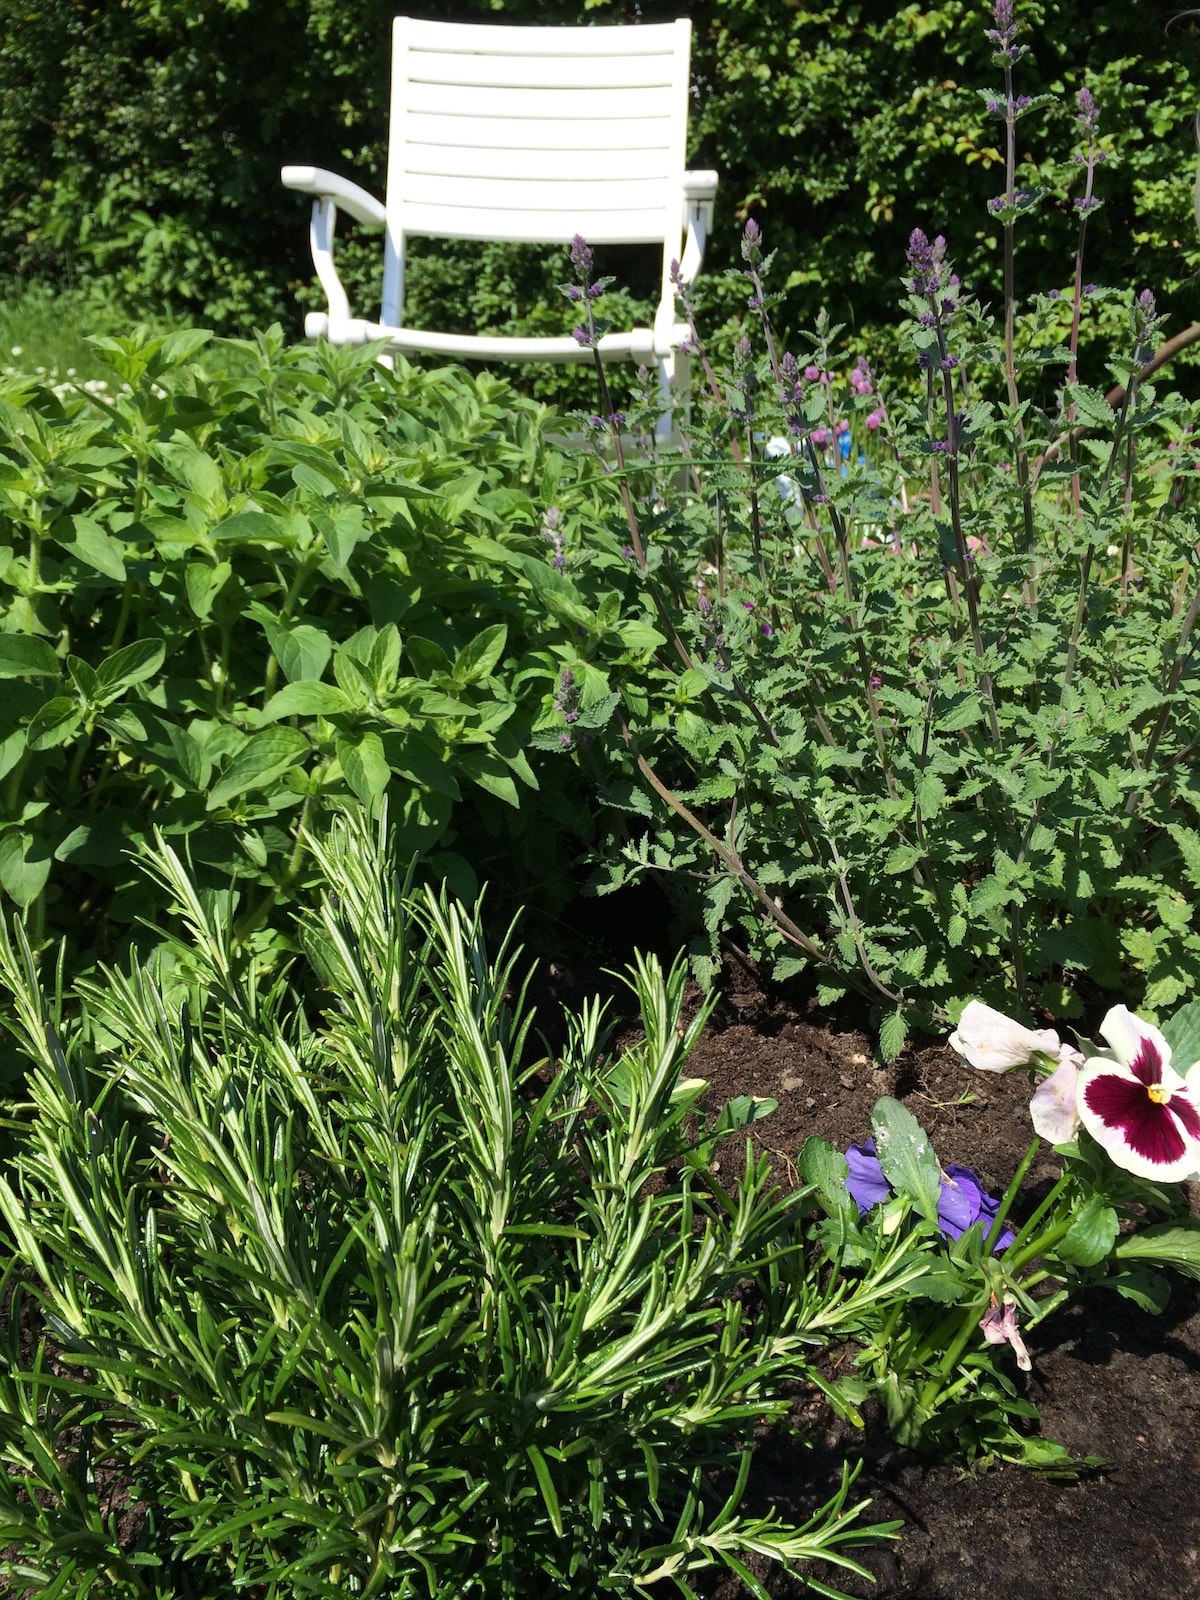 This May-weekend we prepared the beds with Rosemary, Thyme, Merian and Lavas for your dinners!